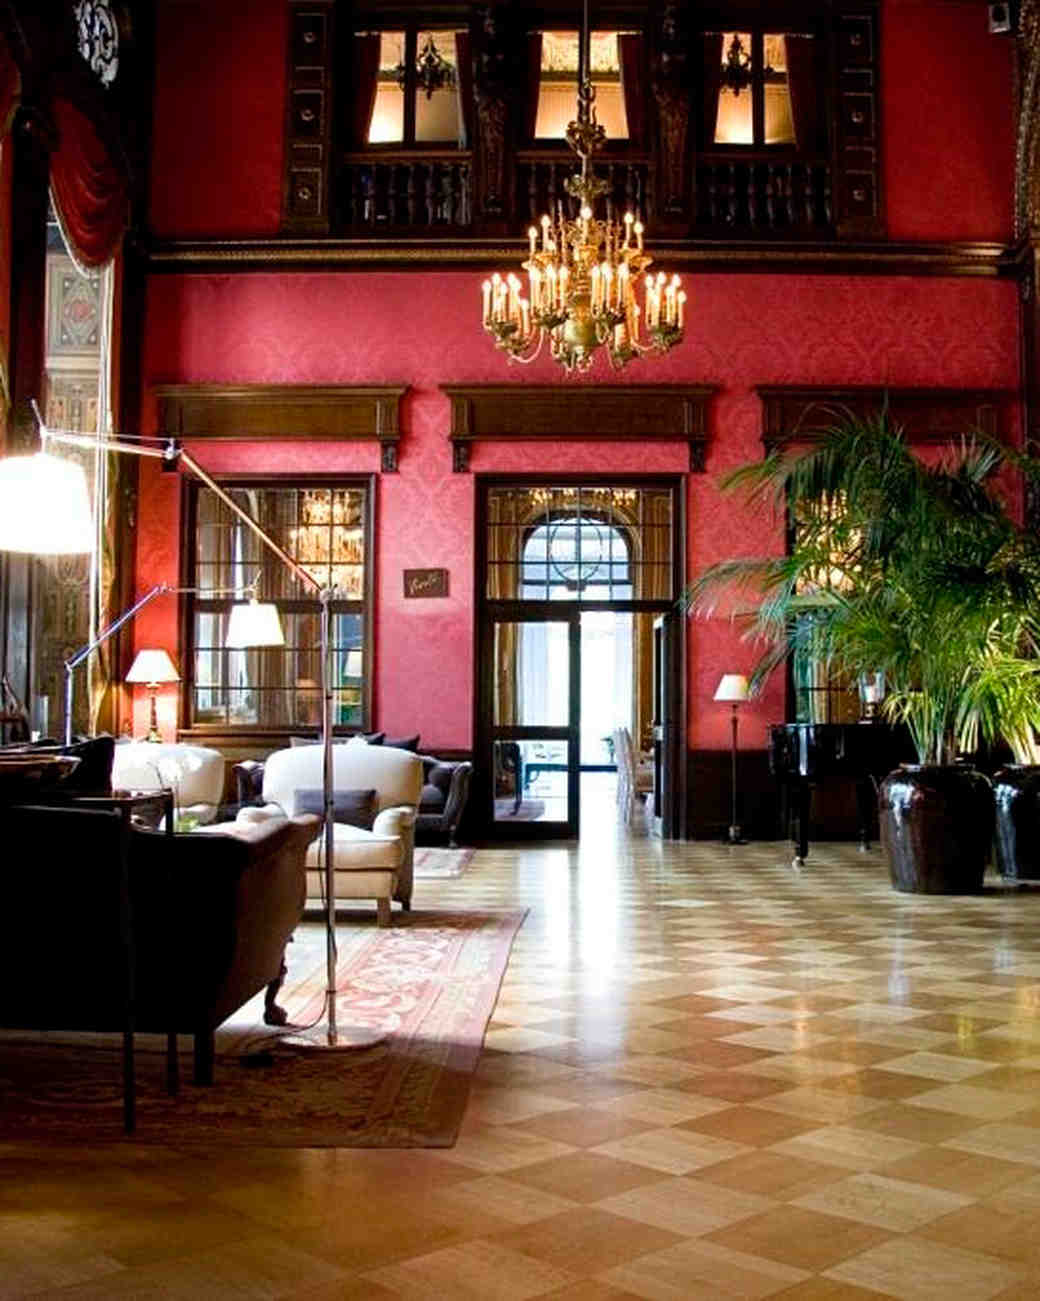 smith-schlosshotel-berlin-germany.jpg